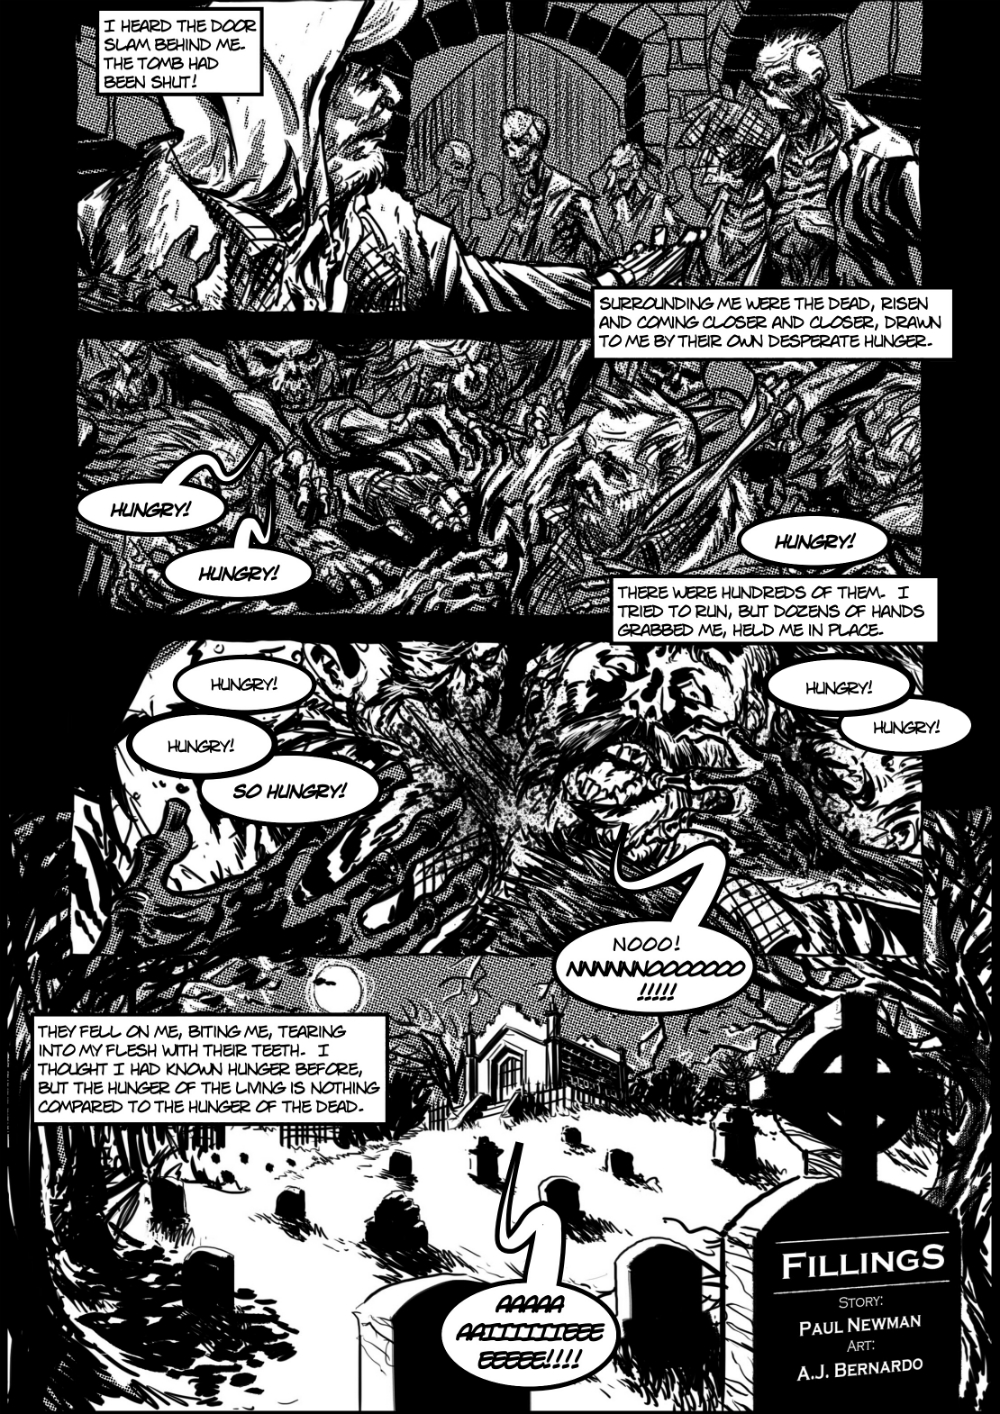 FILLINGS page 6 - story 6